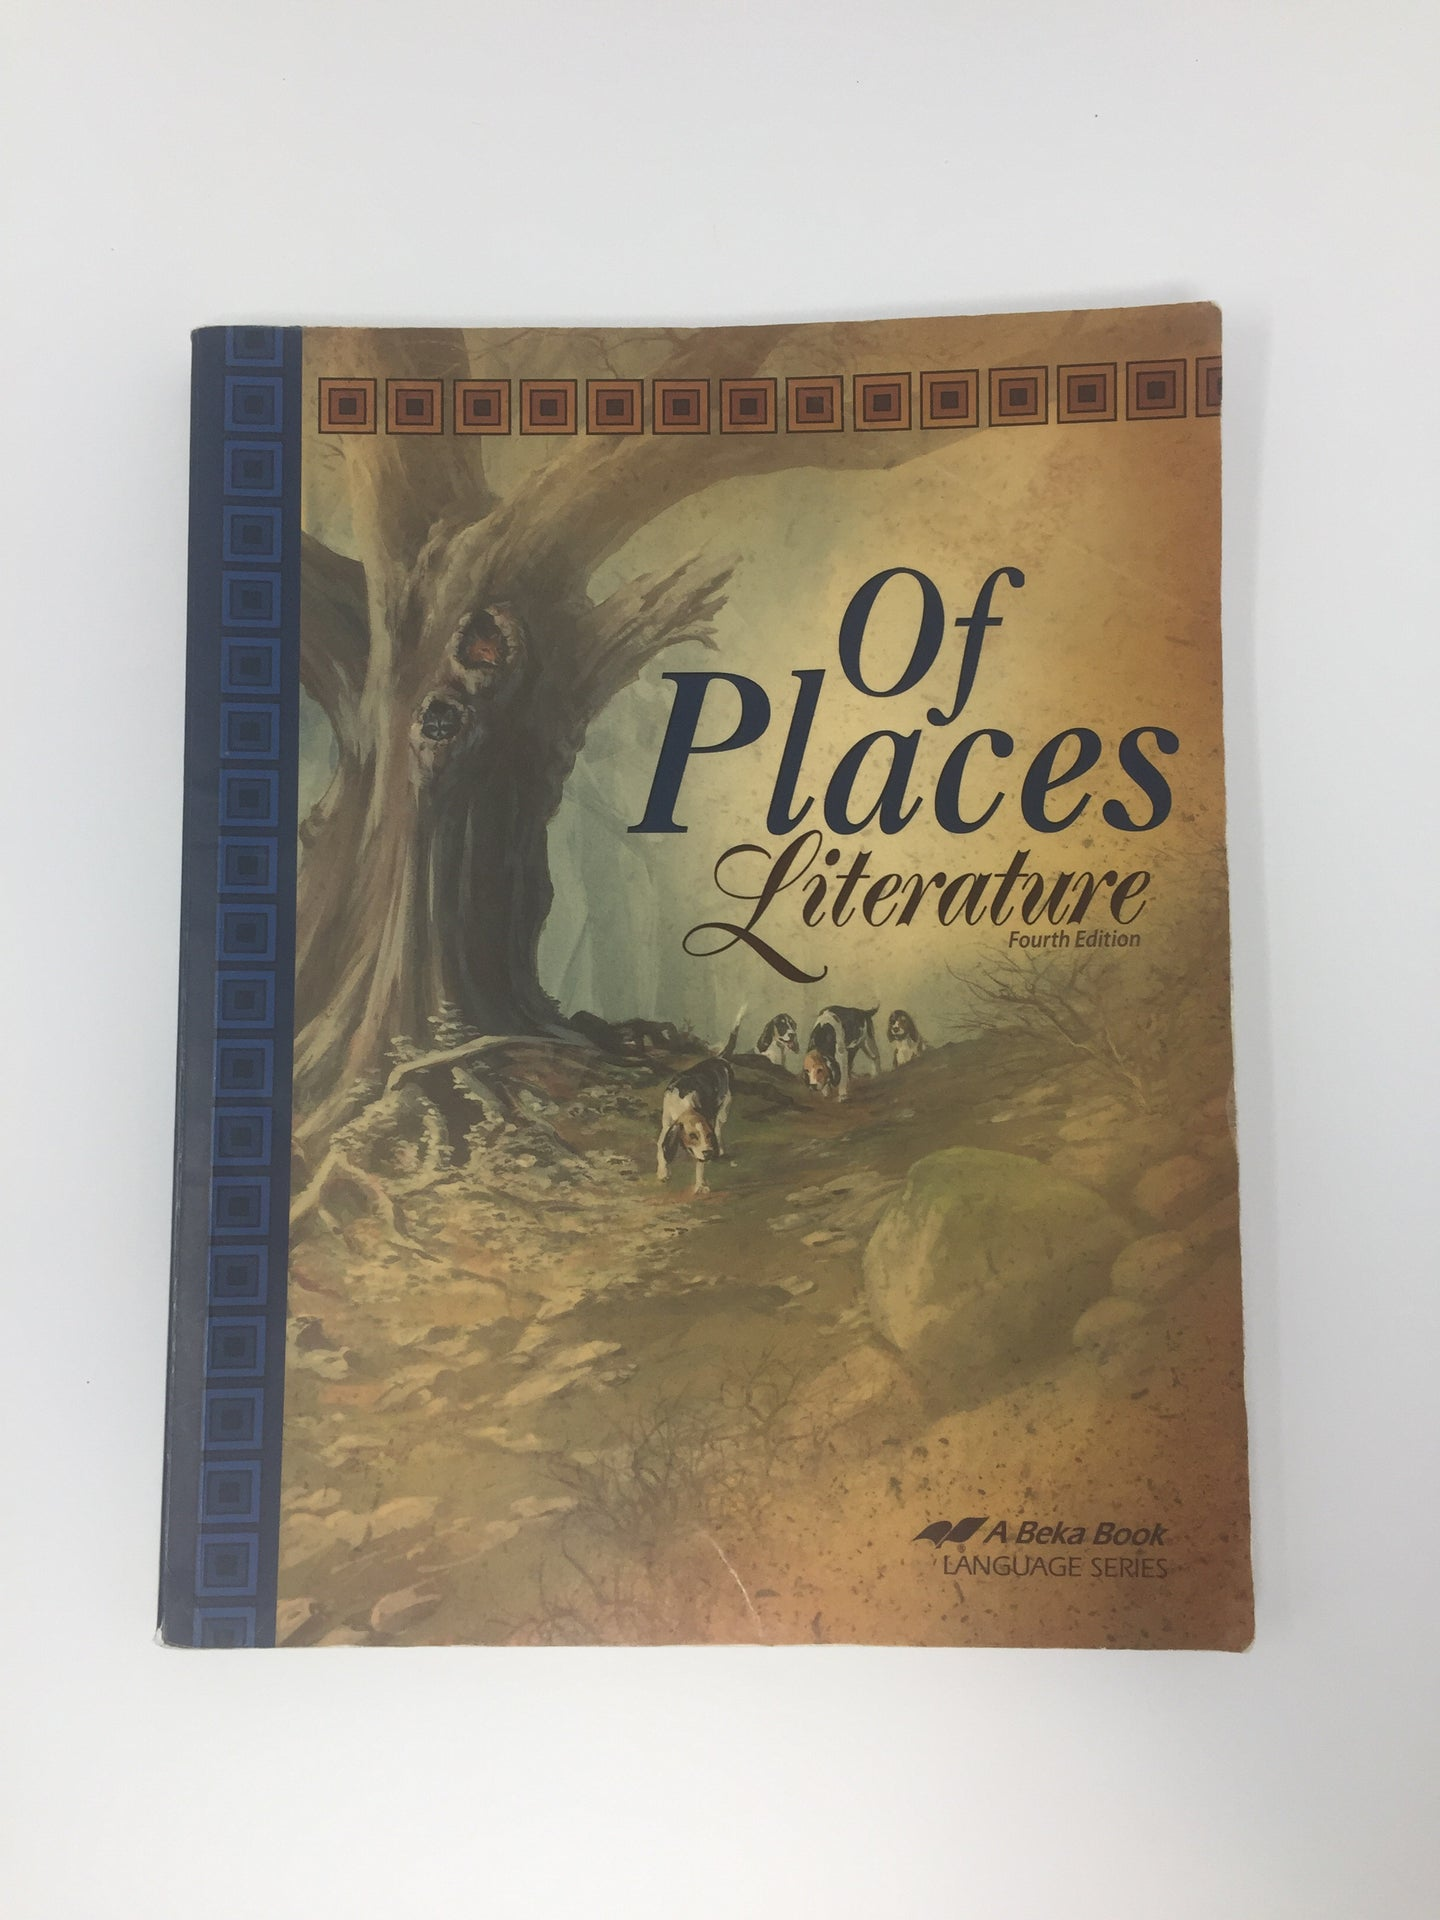 Of Places Literature (4th Edition) Abeka (Used - Good) - Little Green Schoolhouse Books